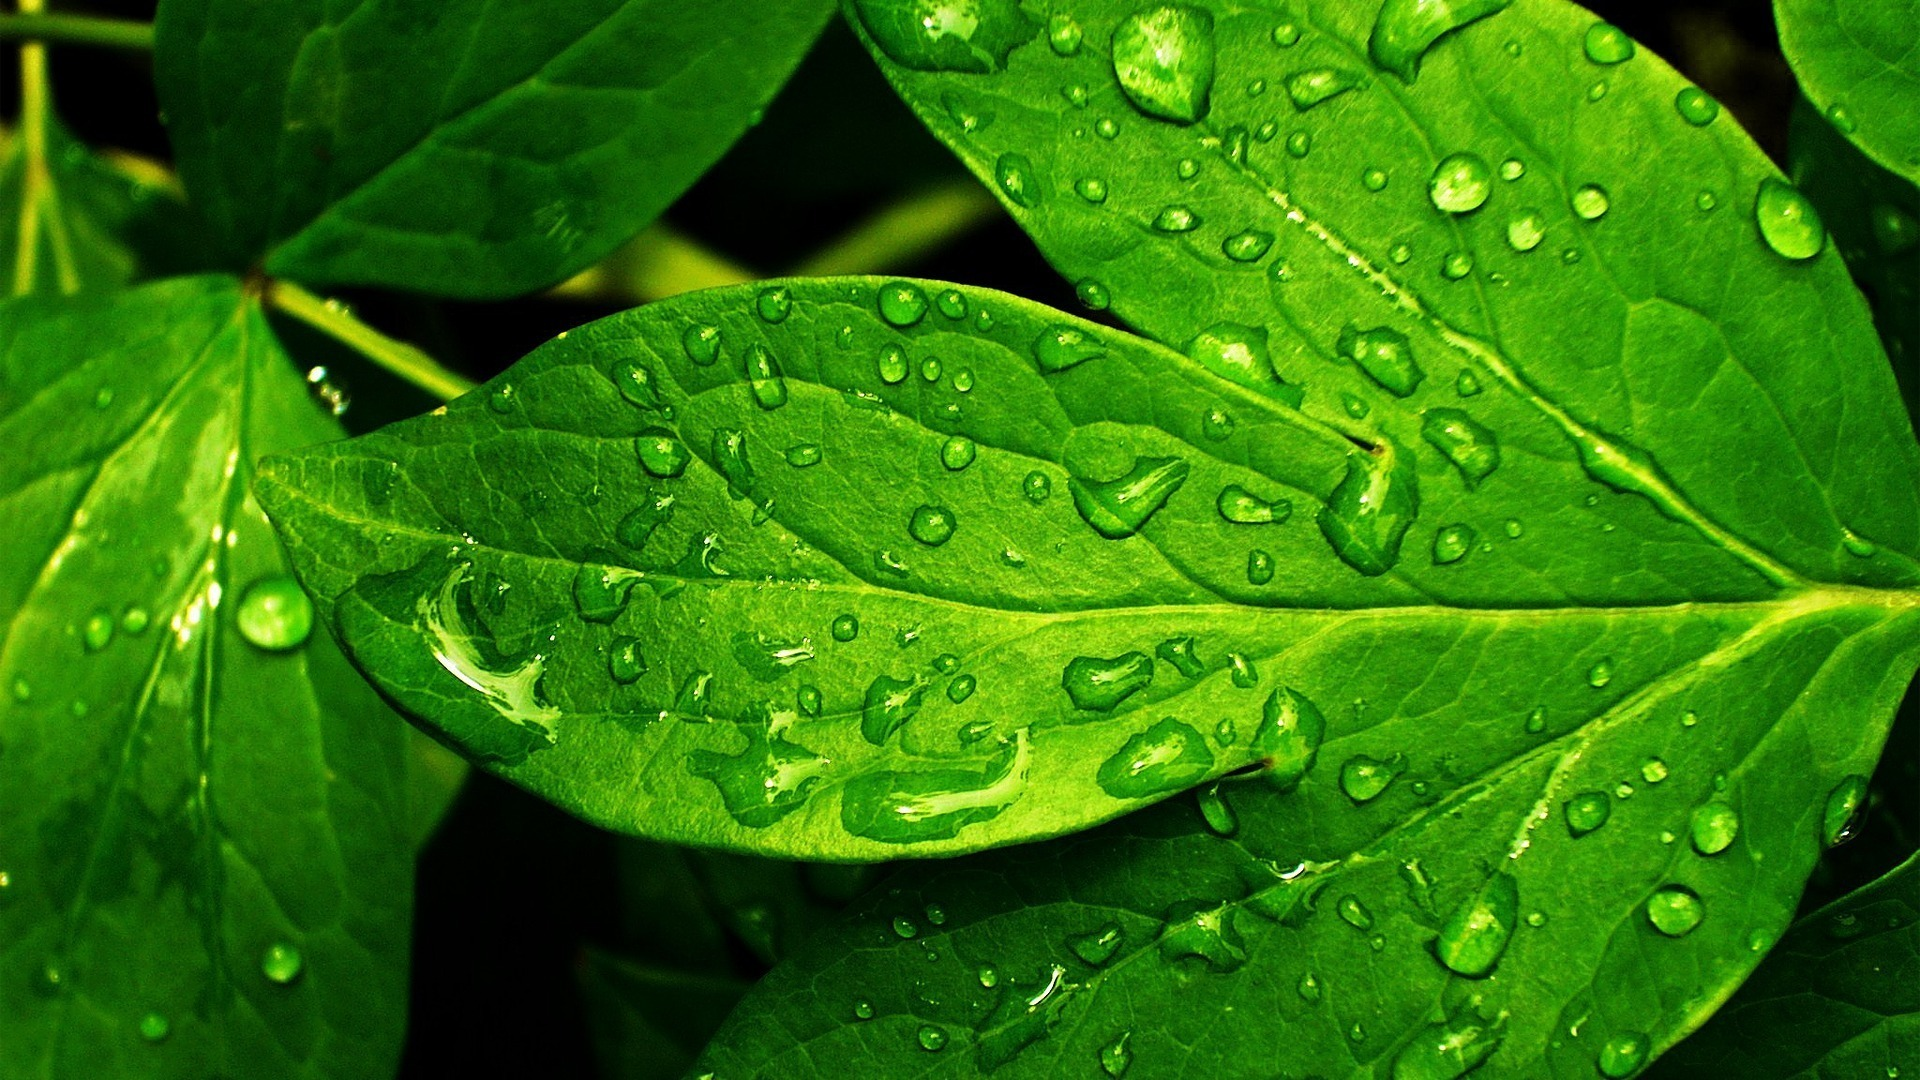 Green Leaves Hd Wallpaper-1